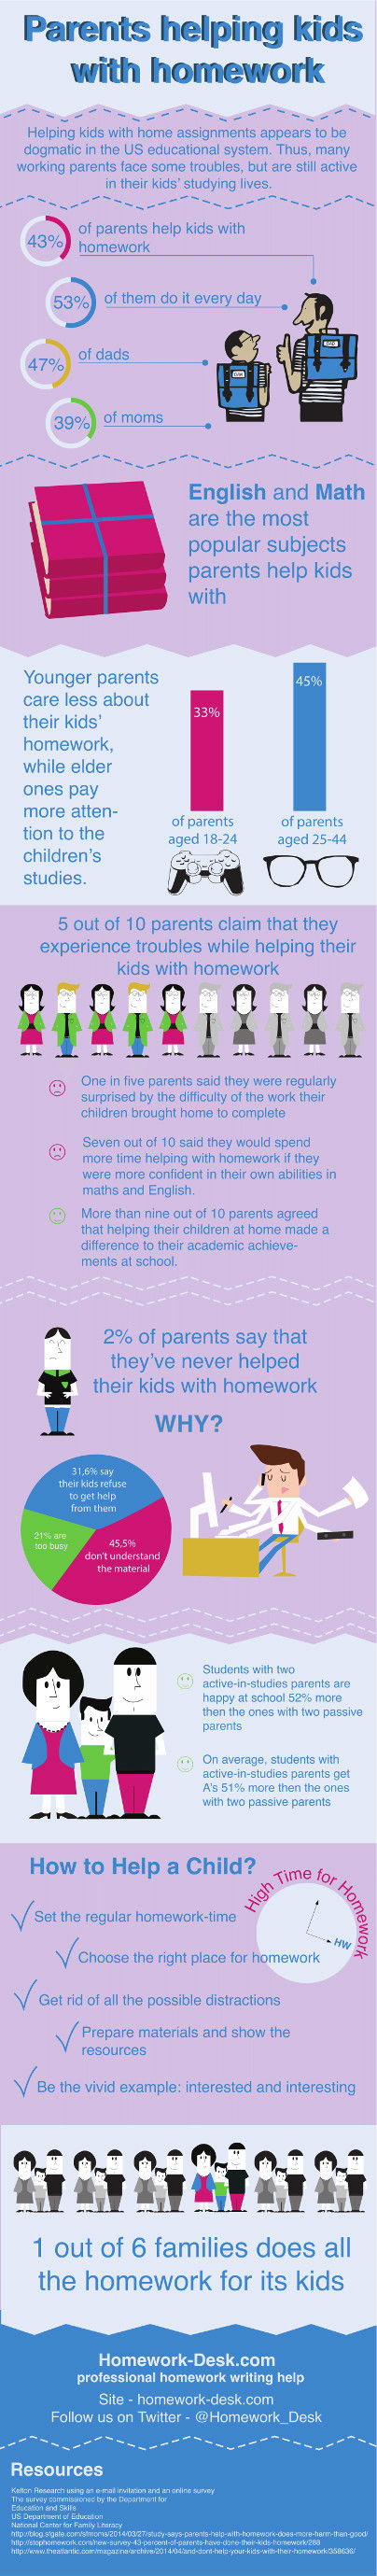 Parents Helping Kids With Homework [Infographic]